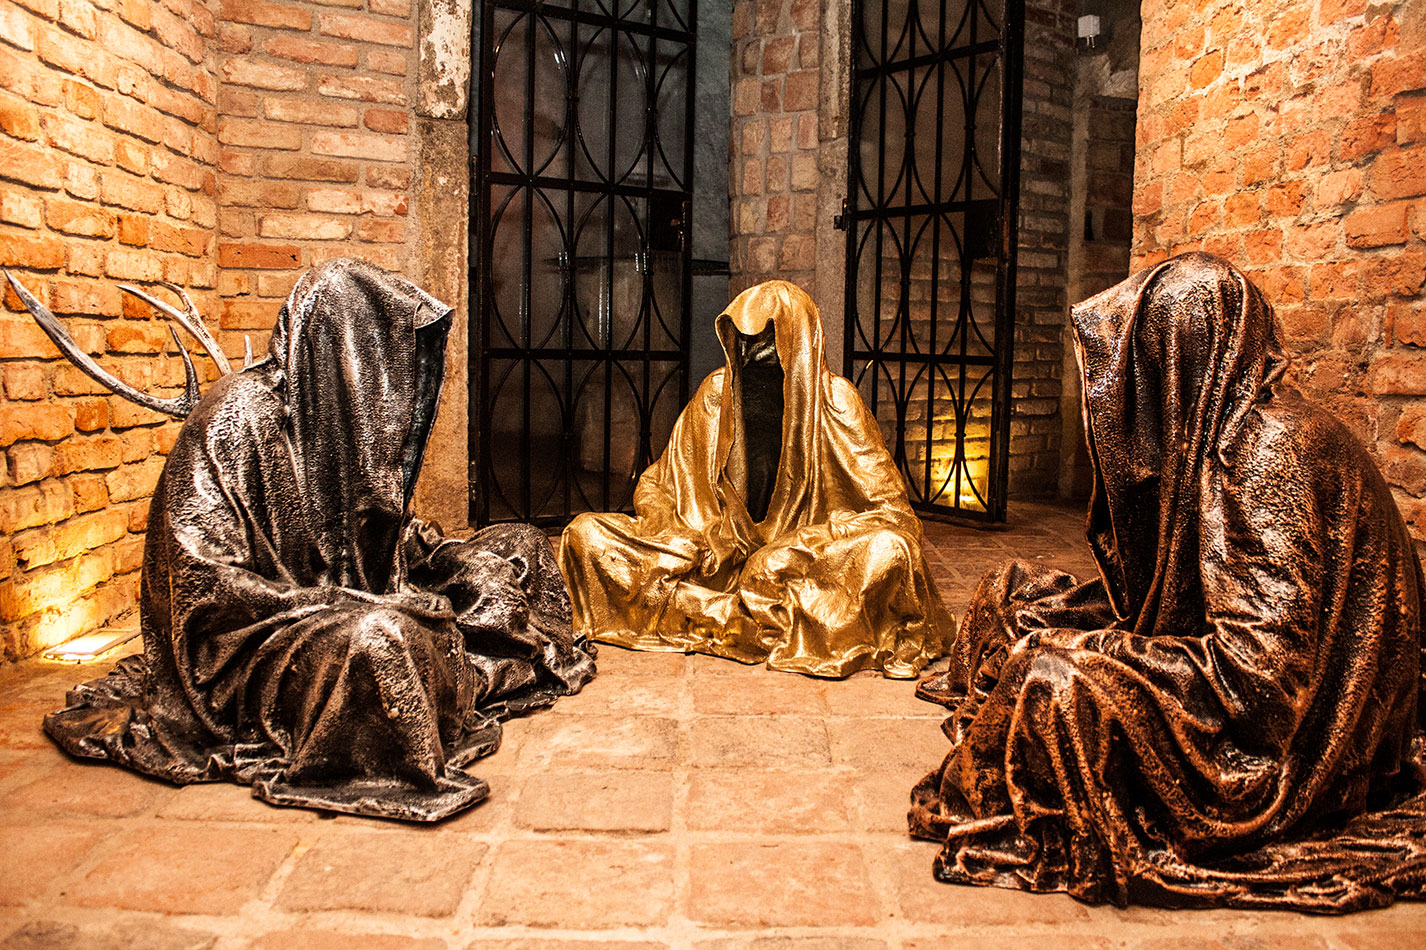 guardians-of-time-sculptor-manfred-kielnhofer-contemporary-modern-fine-arts-antique-sculpture-sttue-art-design-2525